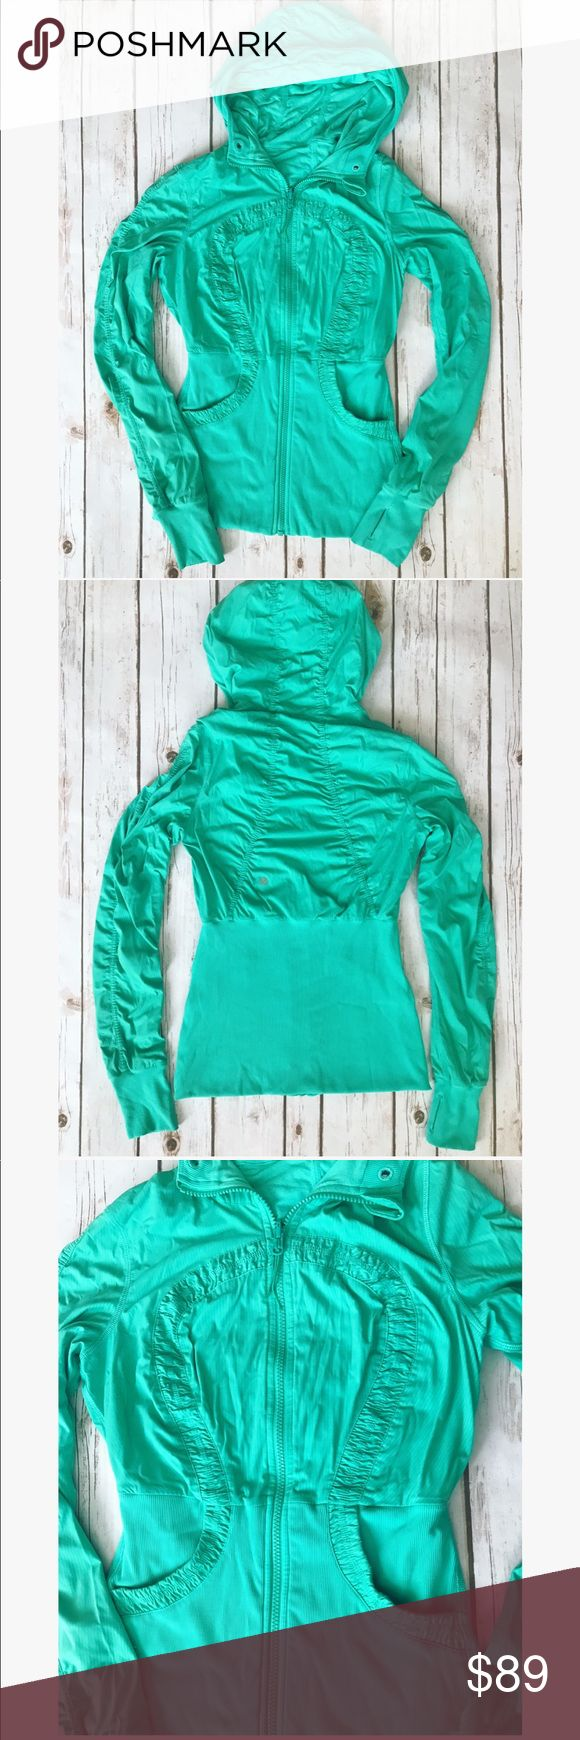 💗 Gorgeous Lululemon two faced hooded jacket 💗 💗 Gorgeous Lululemon hooded jacket in size S, this jacket also can be worn on both sides its two faced I been wearing it only on the side I took pictures on but you can wear it on both sides the color is the same on both sides. Any questions please let me know 💗 lululemon athletica Jackets & Coats